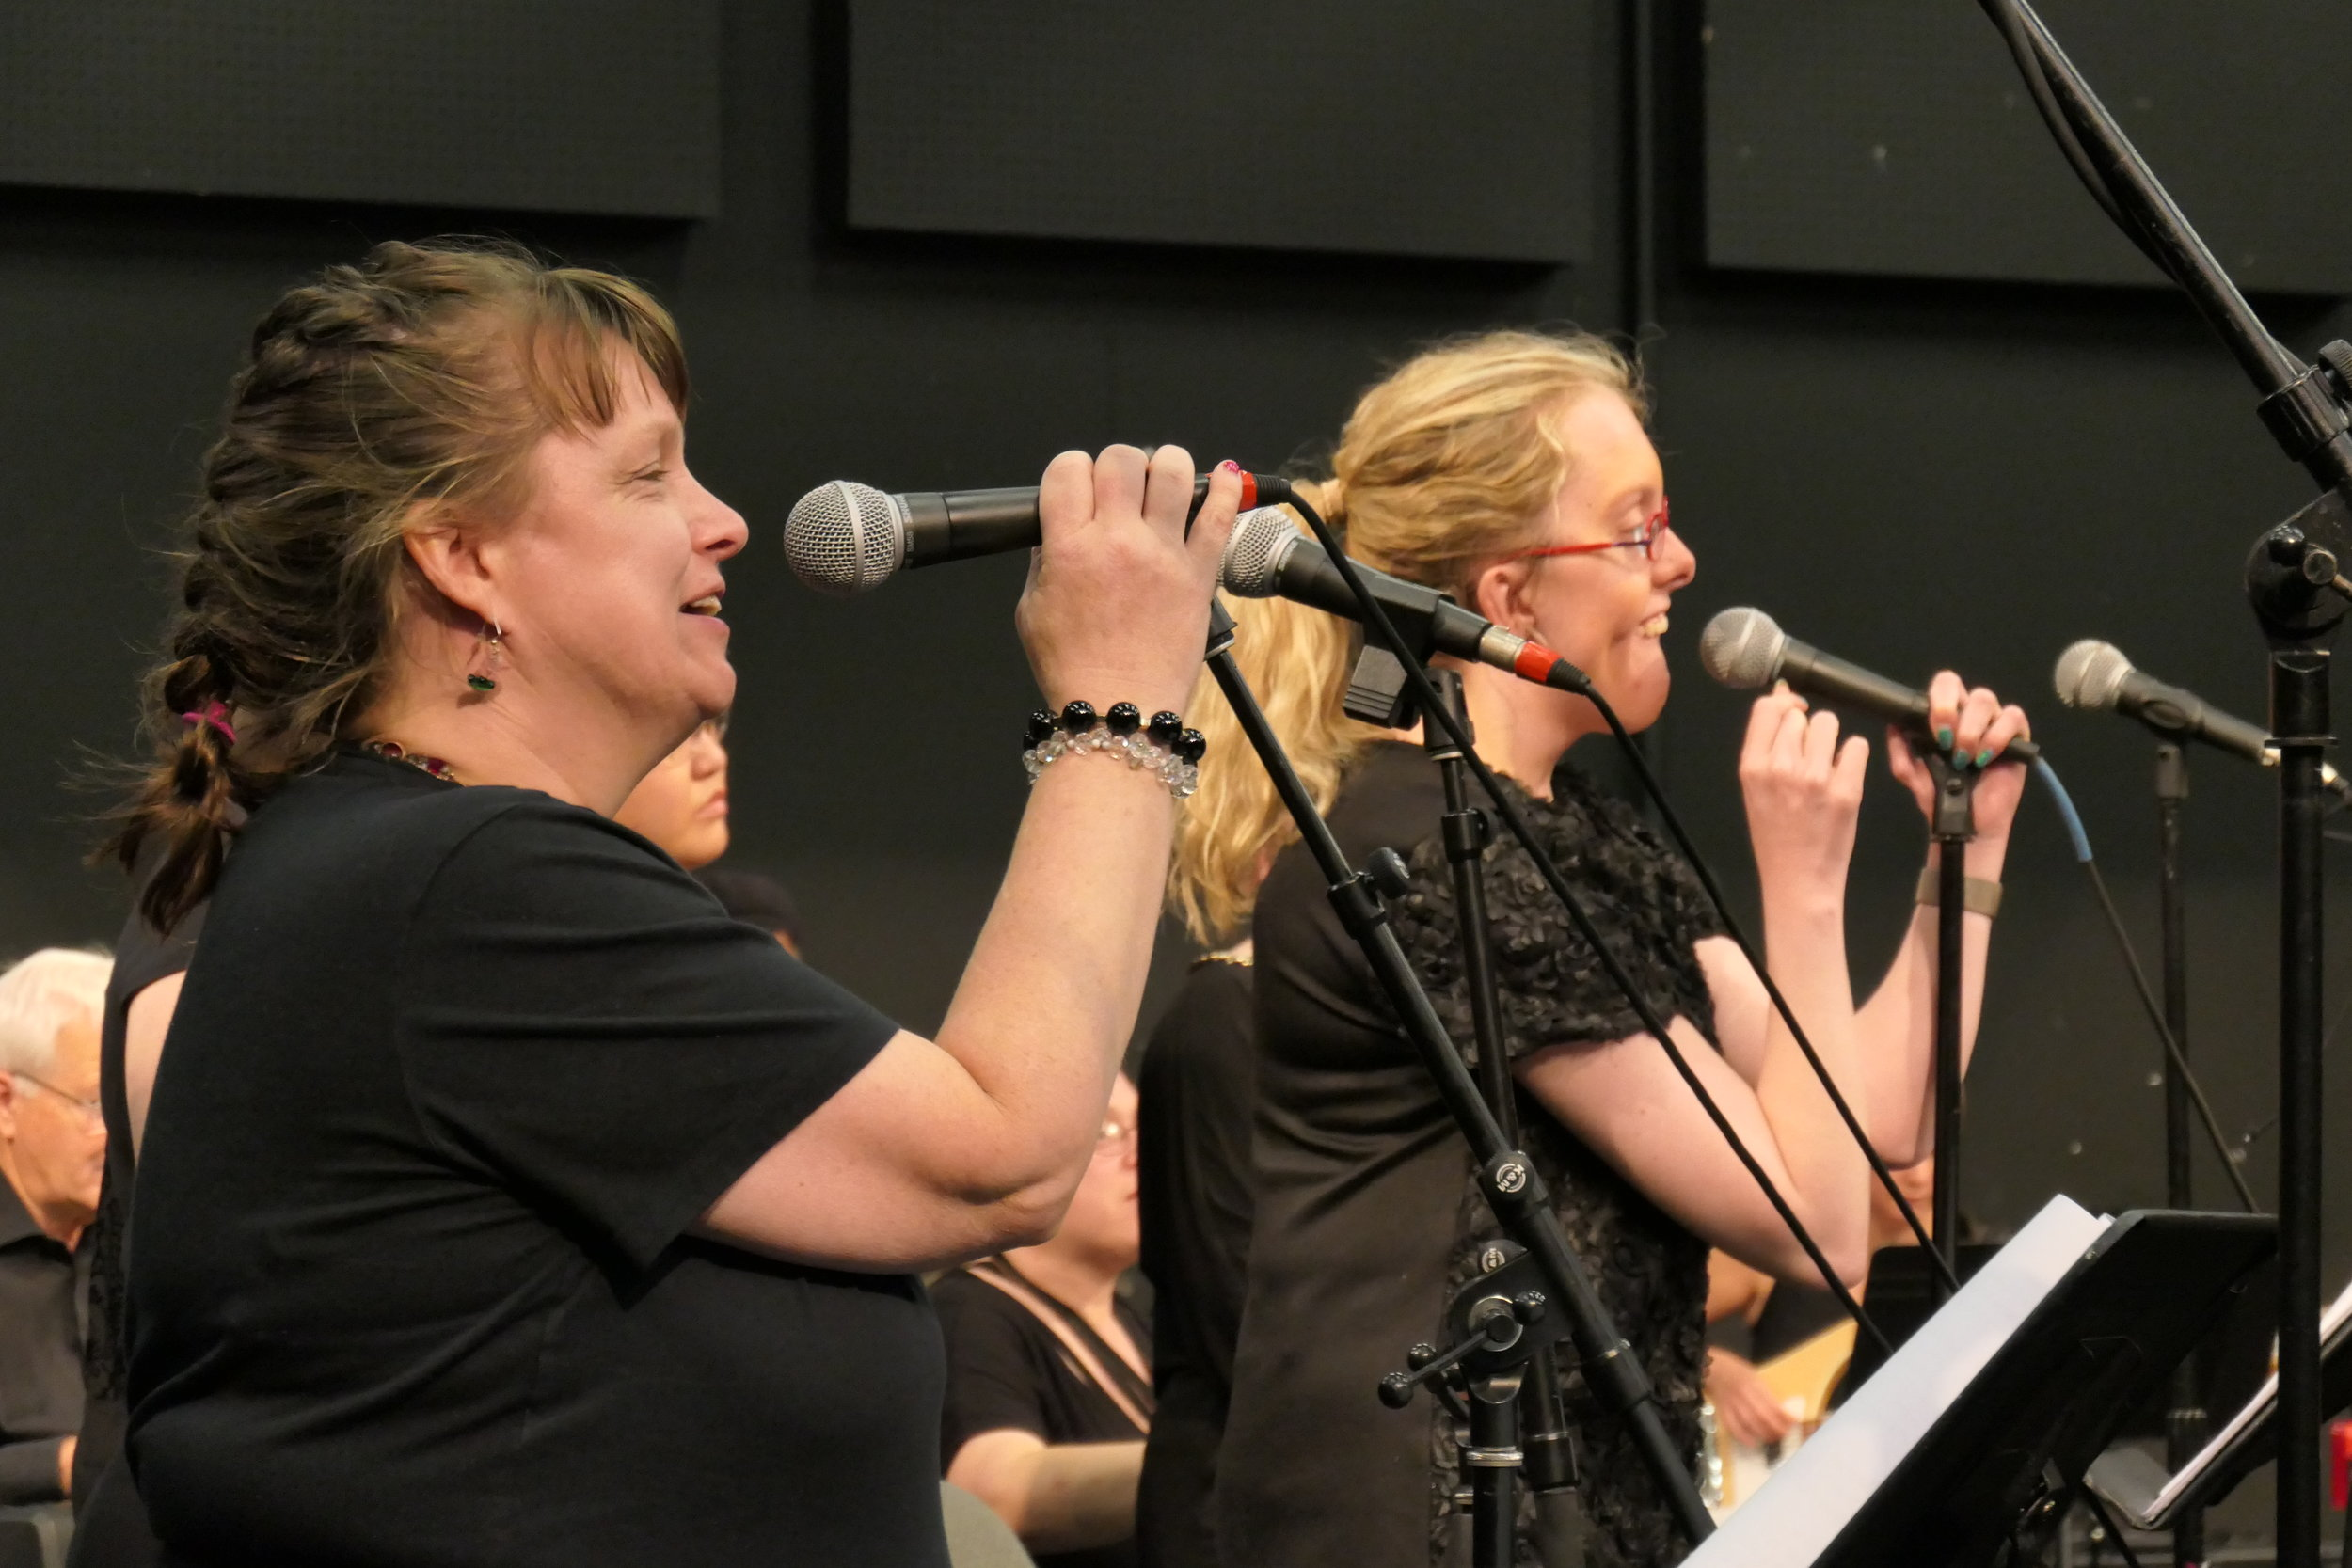 Two women wearing black seen from the side, holding microphones